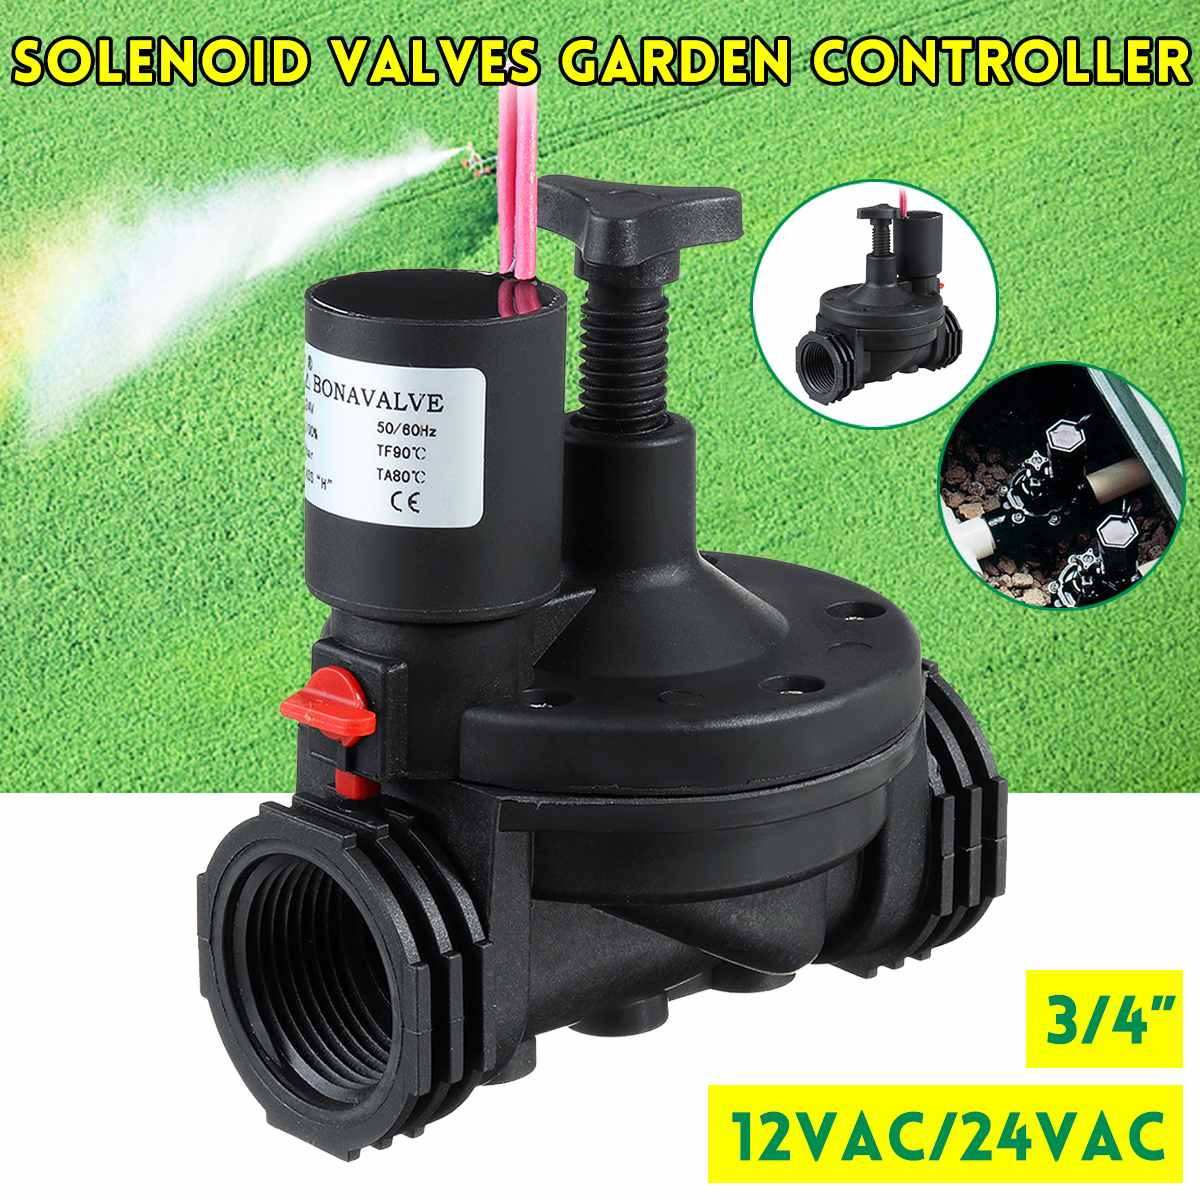 Industrial Irrigation-Valve Solenoid Water-Timers Garden-Controller Valves for Yard AC title=